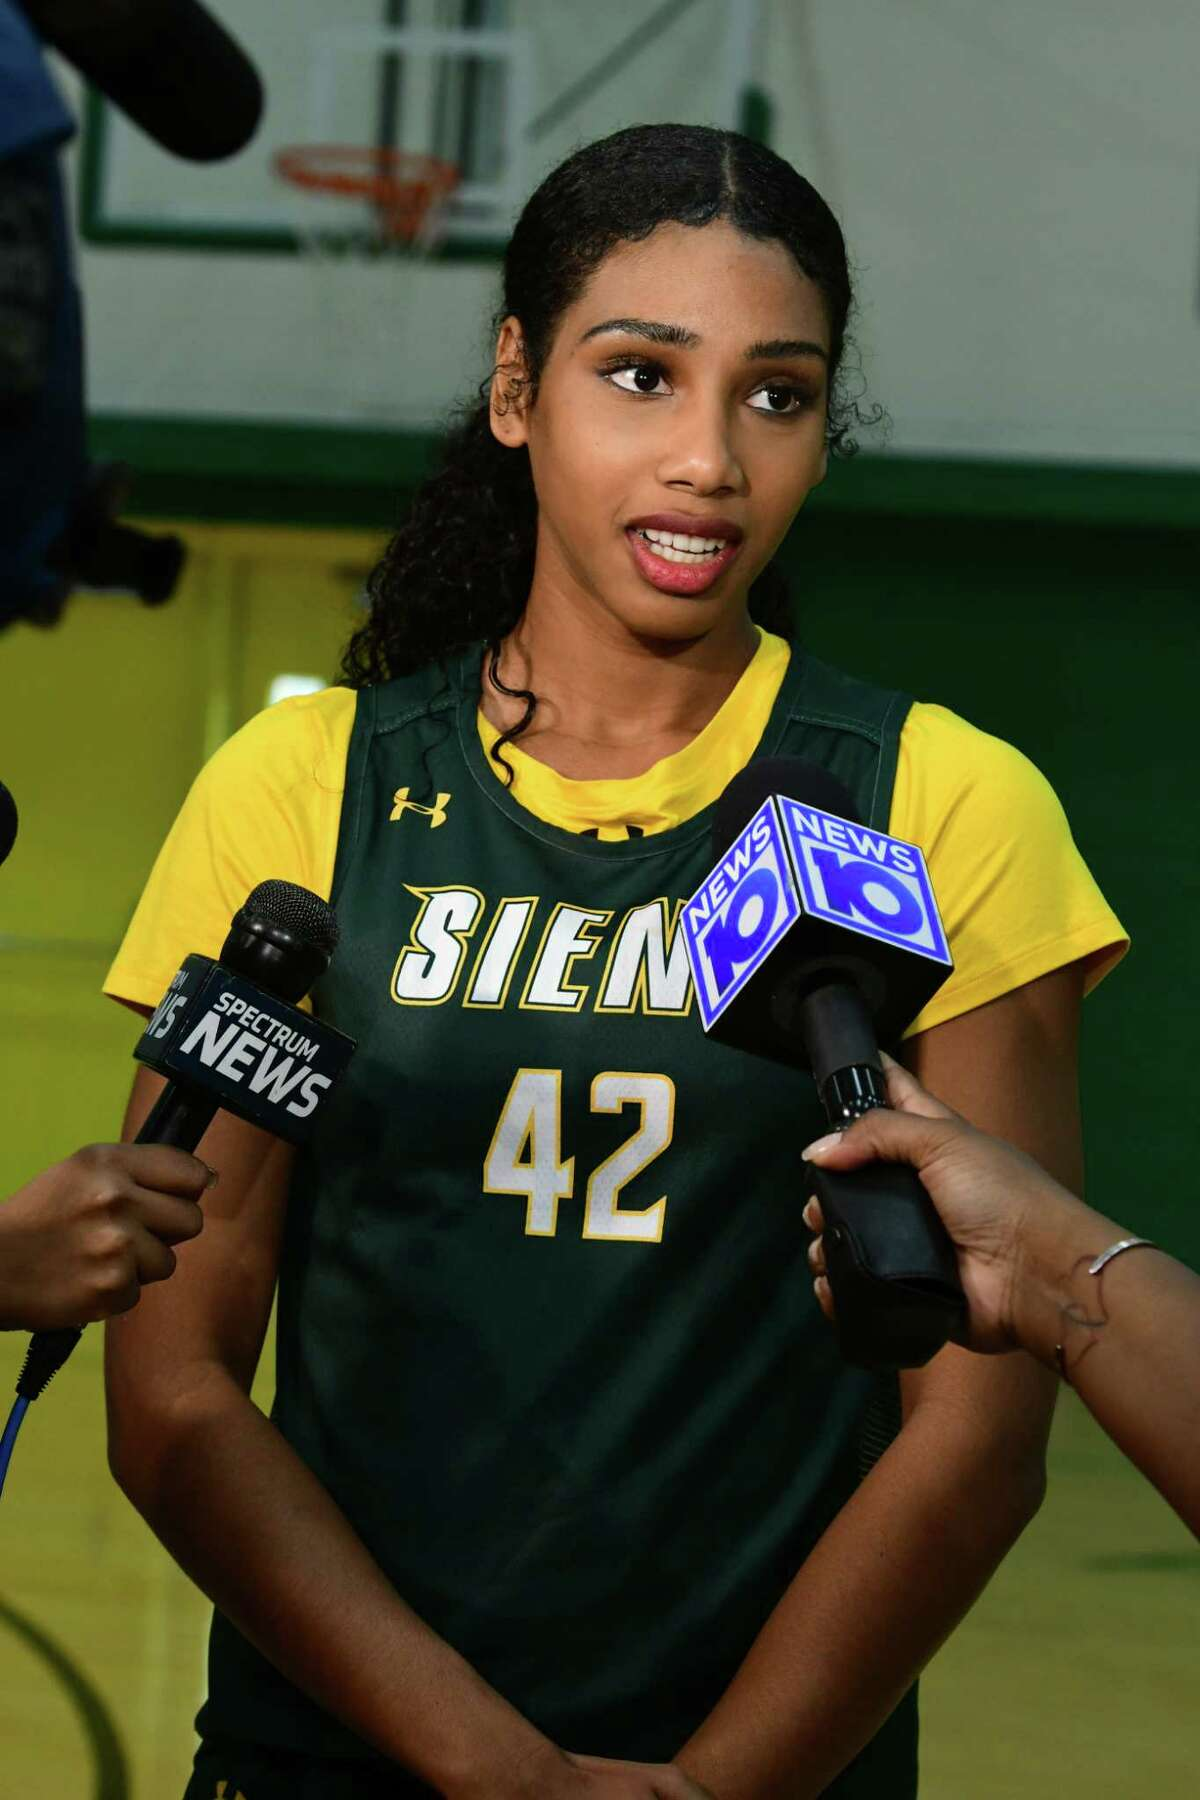 Siena senior forward Sabrina Piper is interviewed during media day for the Siena women's basketball team on Friday, Oct. 11, 2019 in Loudonville, N.Y. (Lori Van Buren/Times Union)